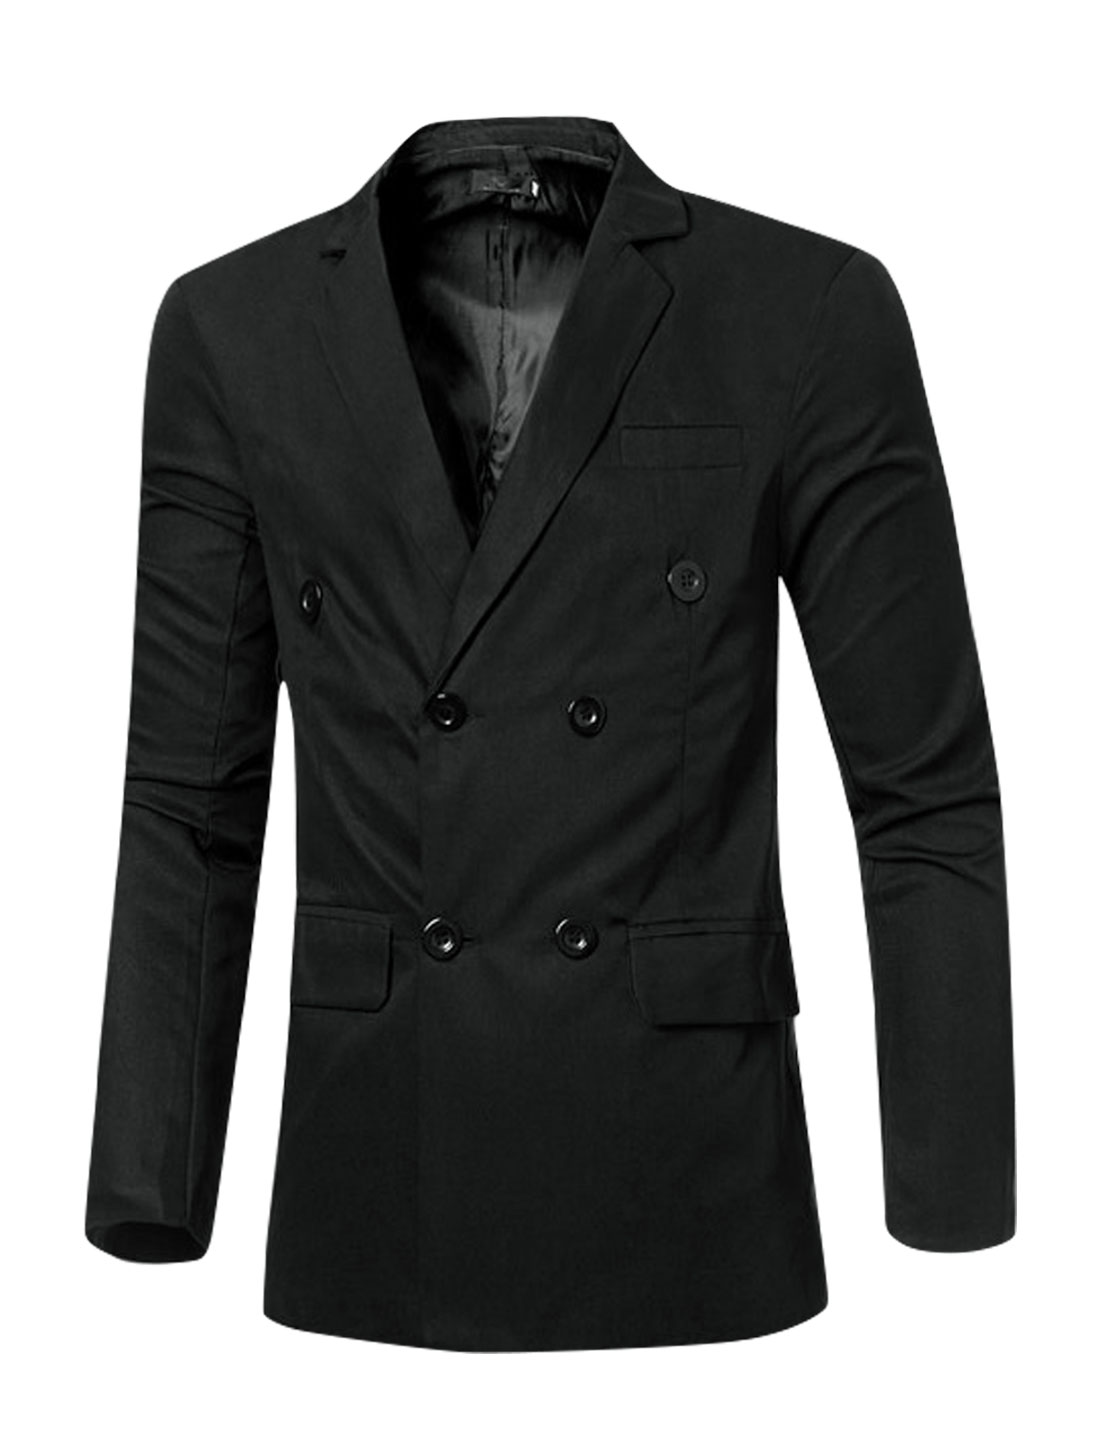 Men Notched Lapel Flap Pockets Double Breasted Blazer Black S